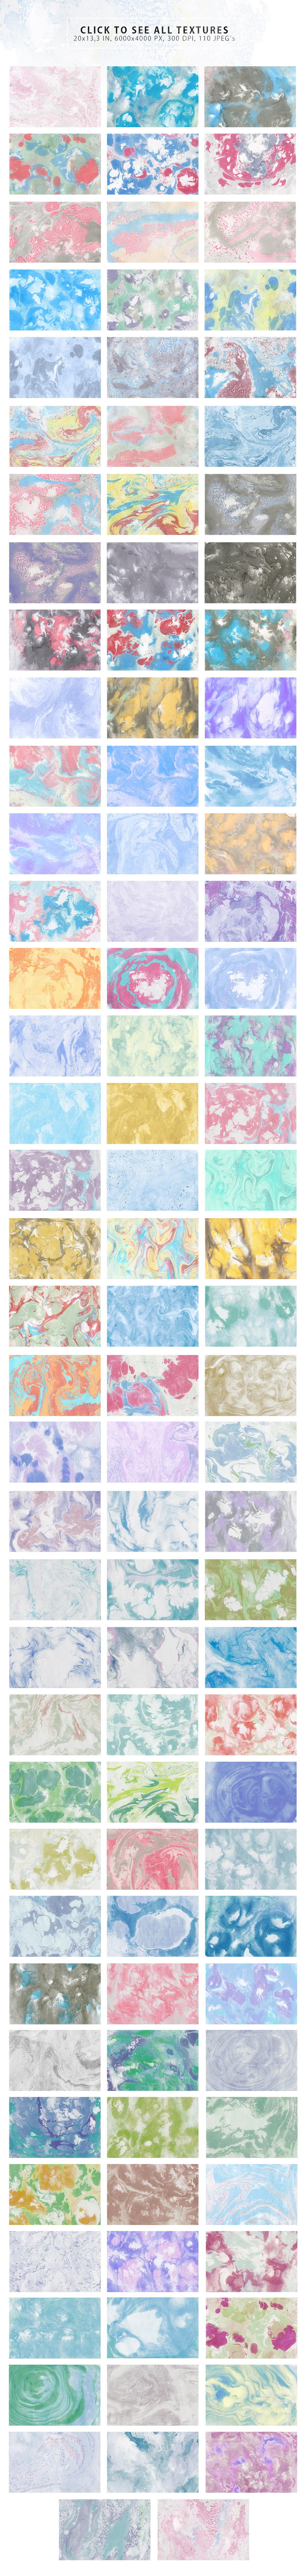 110 Marble Ink Paper Textures example image 9